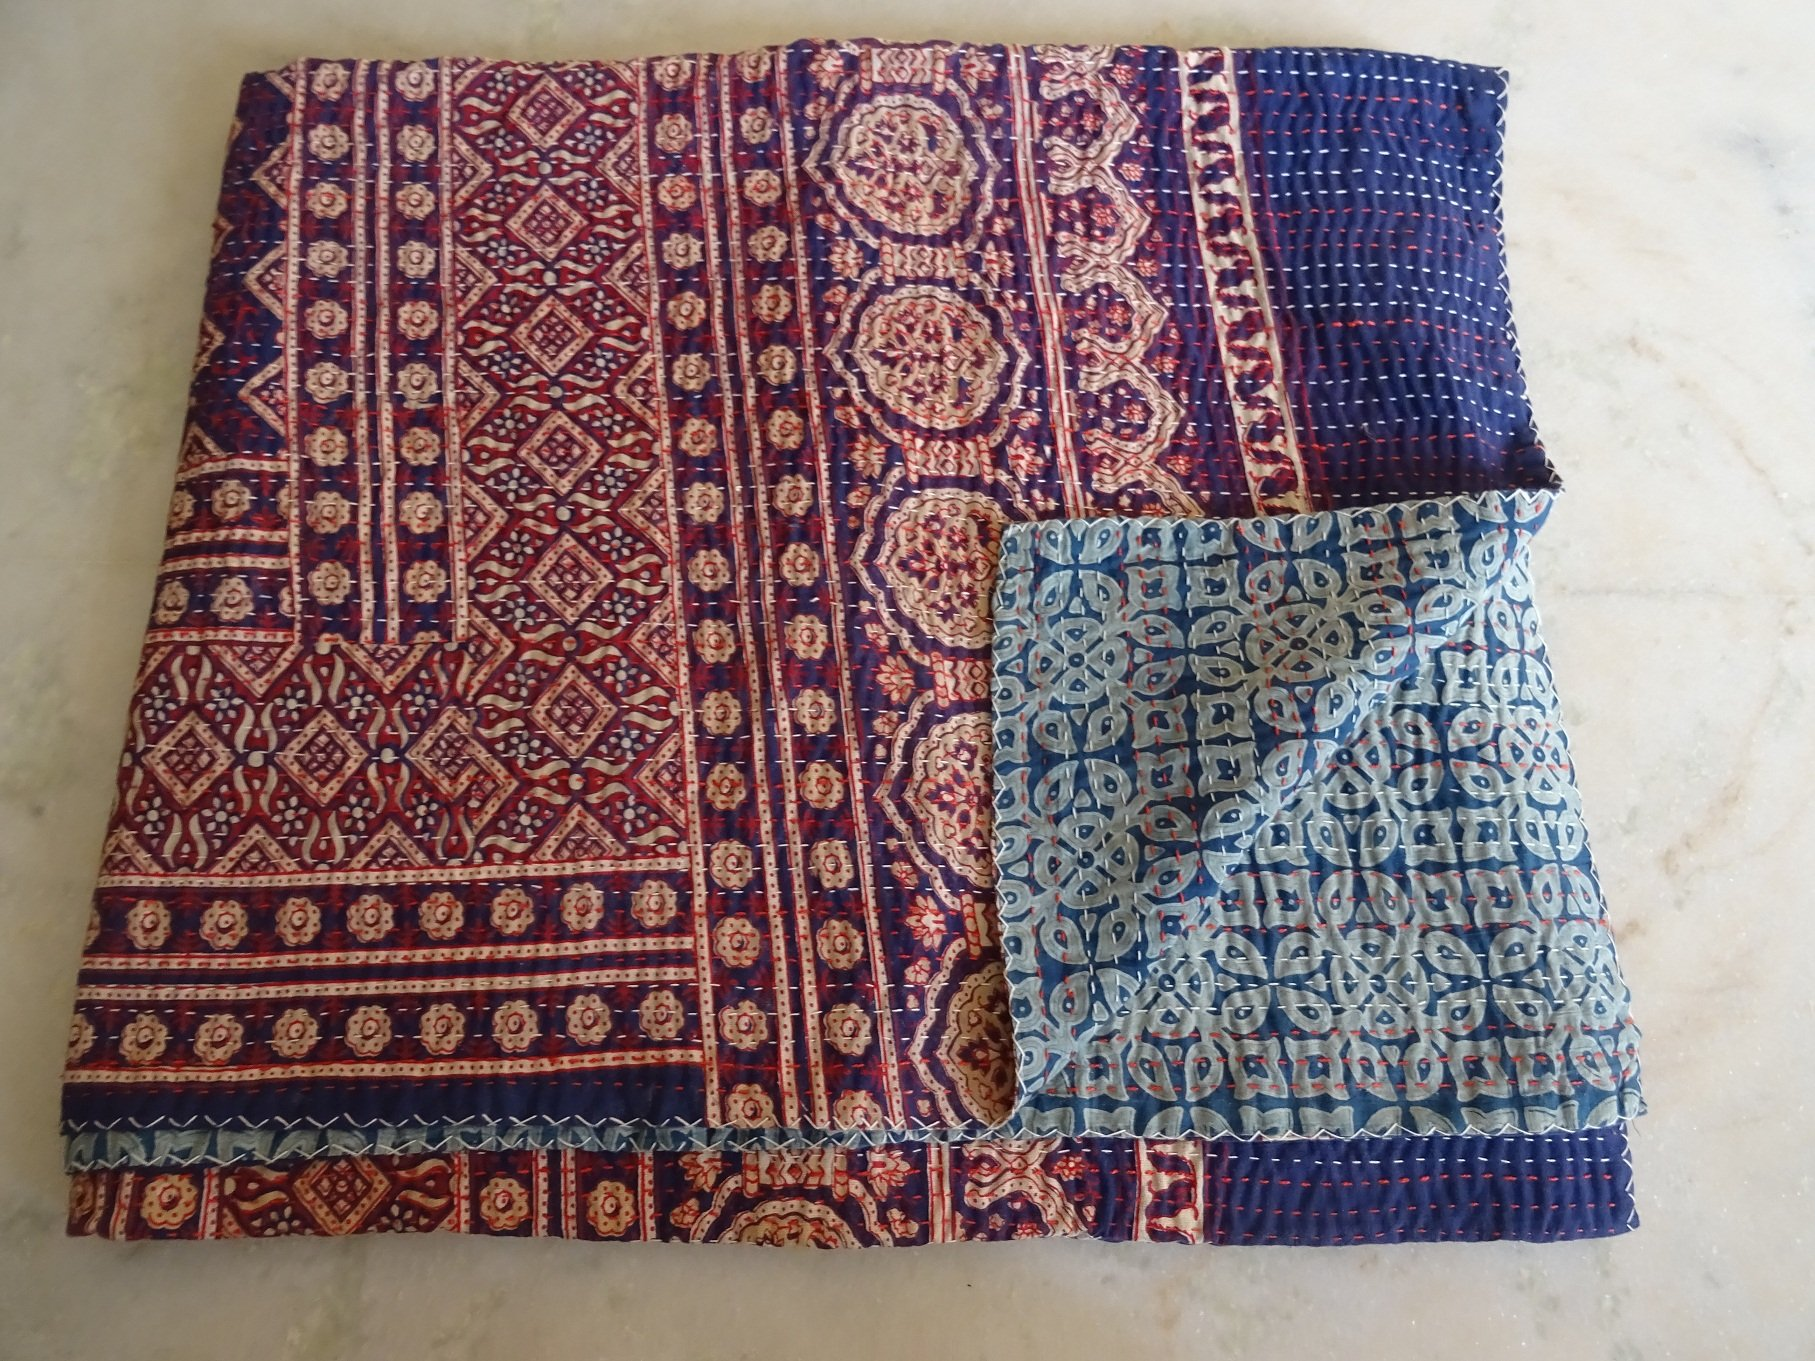 Indian Queen Size Traditional Home Deco Kantha Ajrakh Quilt, Handmade Kantha Print Ajrakh Throw Blanket